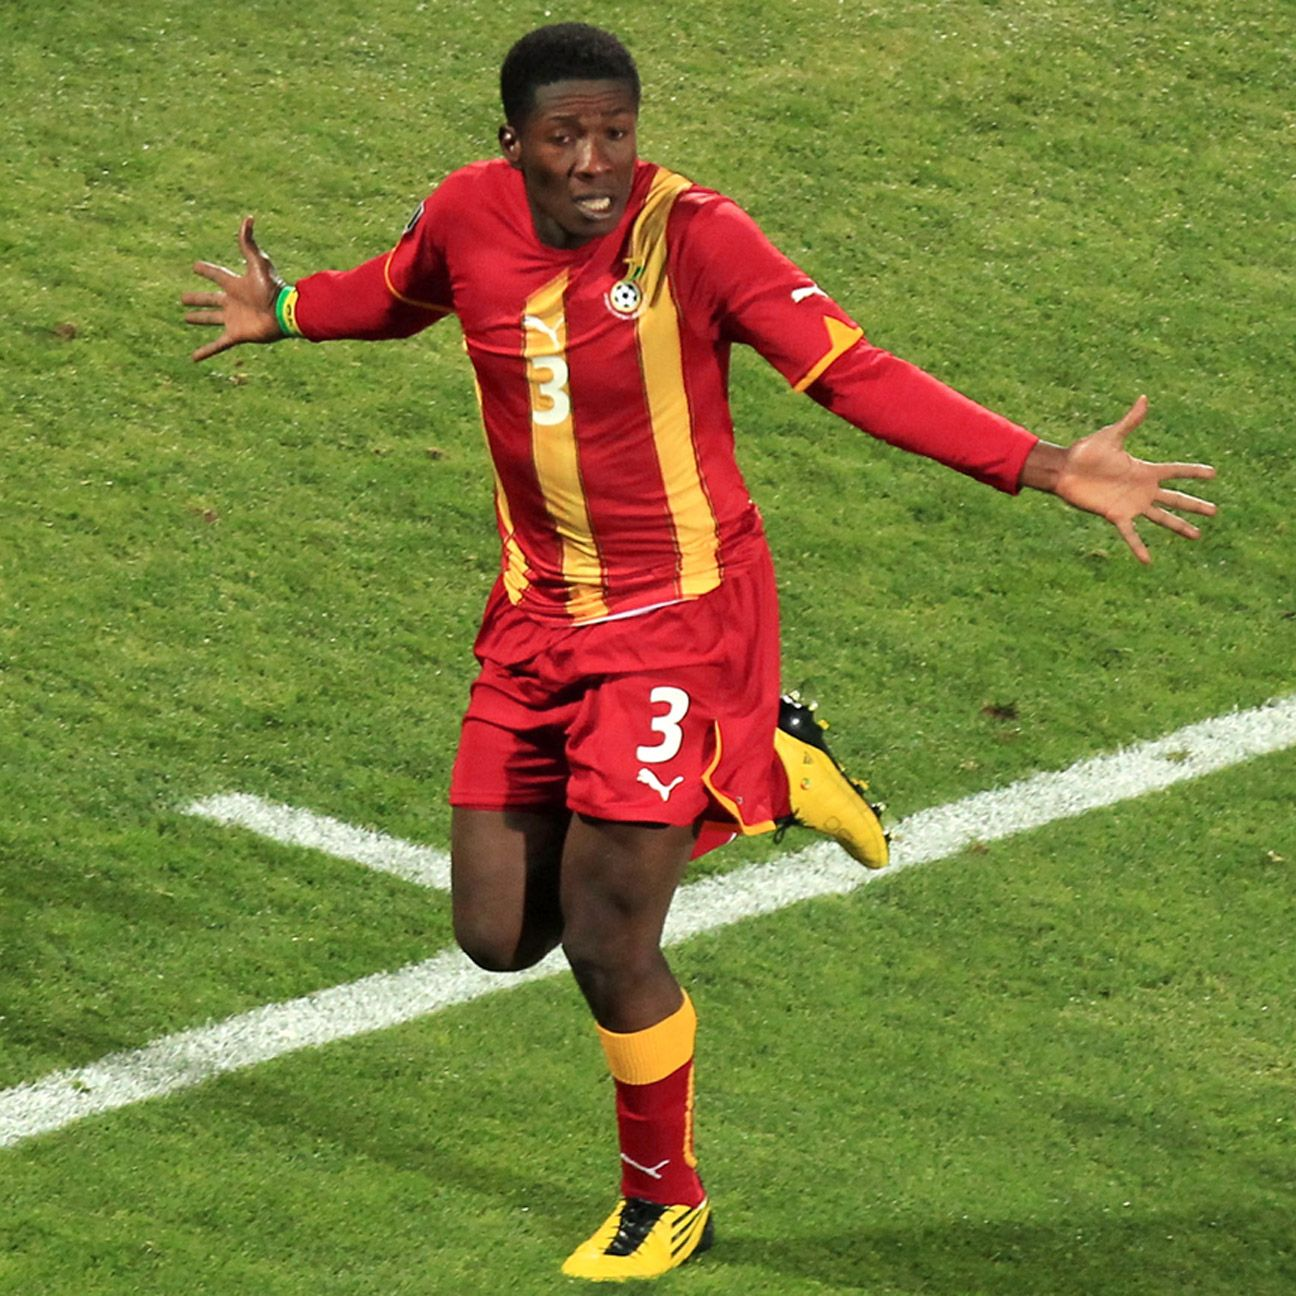 Asamoah Gyan will be looking to score in his third straight World Cup for Ghana.